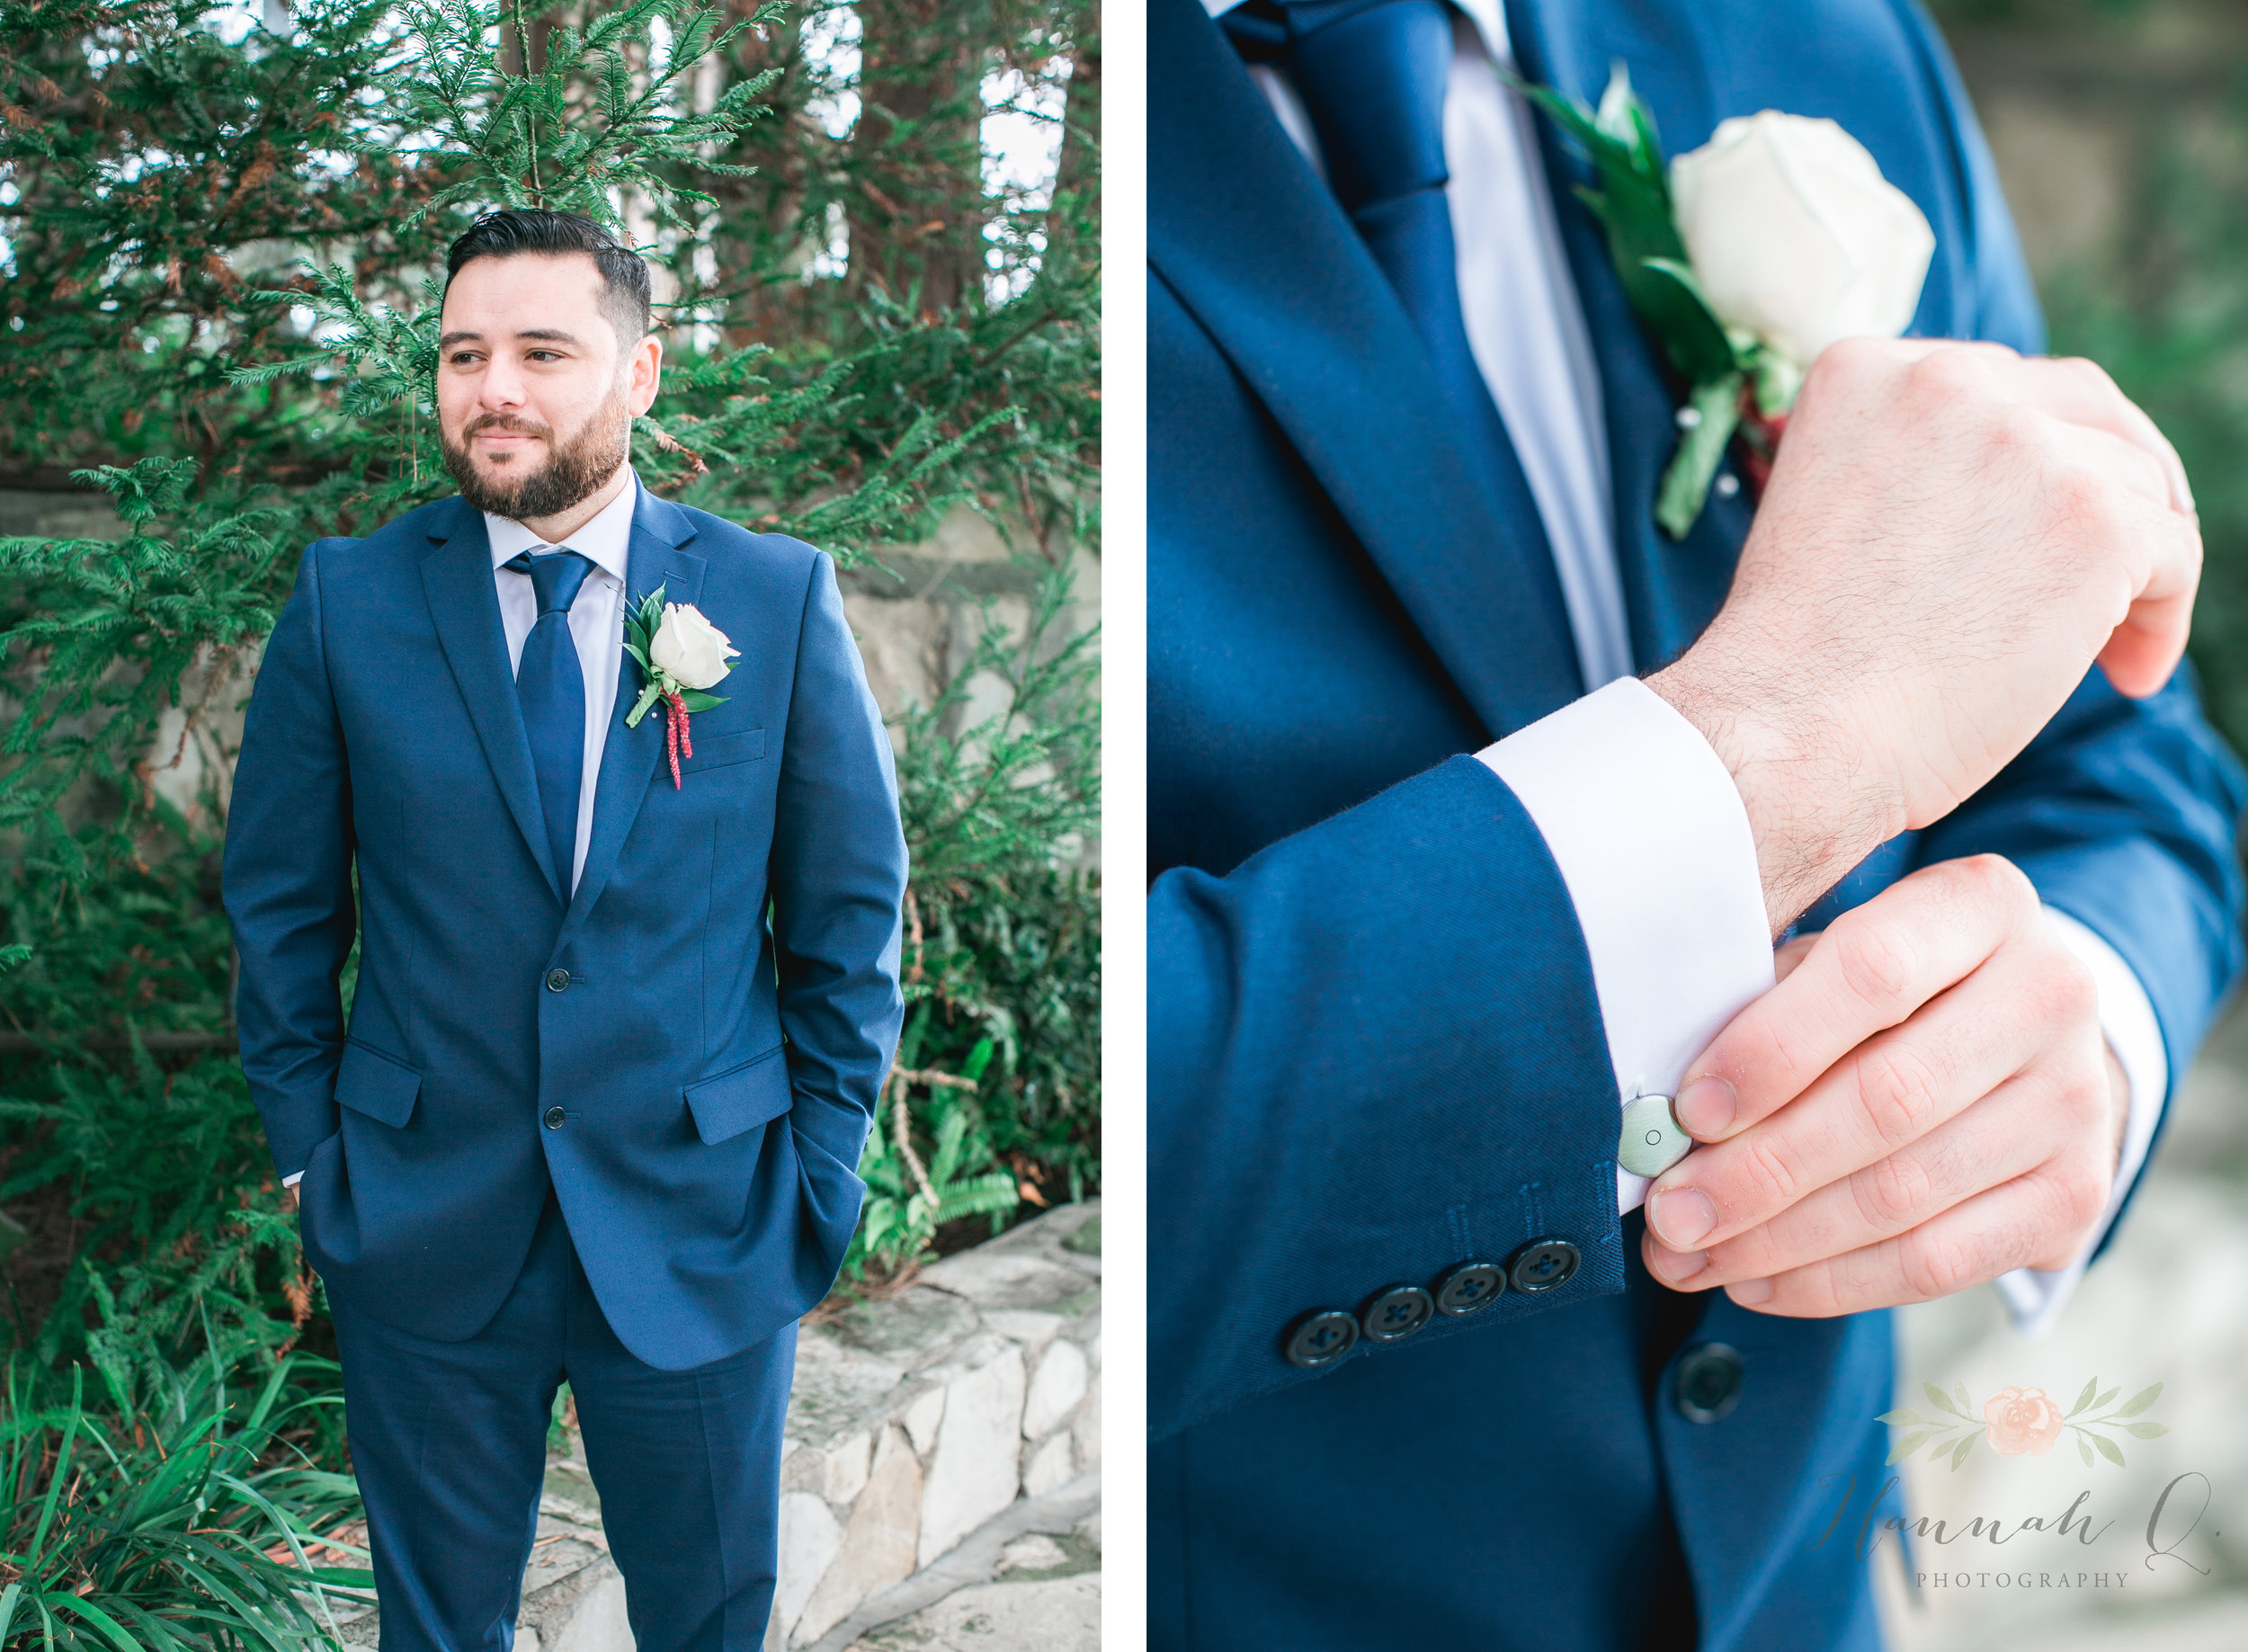 Anthony is either a natural or he did a little research on 'How-to-pose-for-wedding-photography'. I hardly had to direct him!